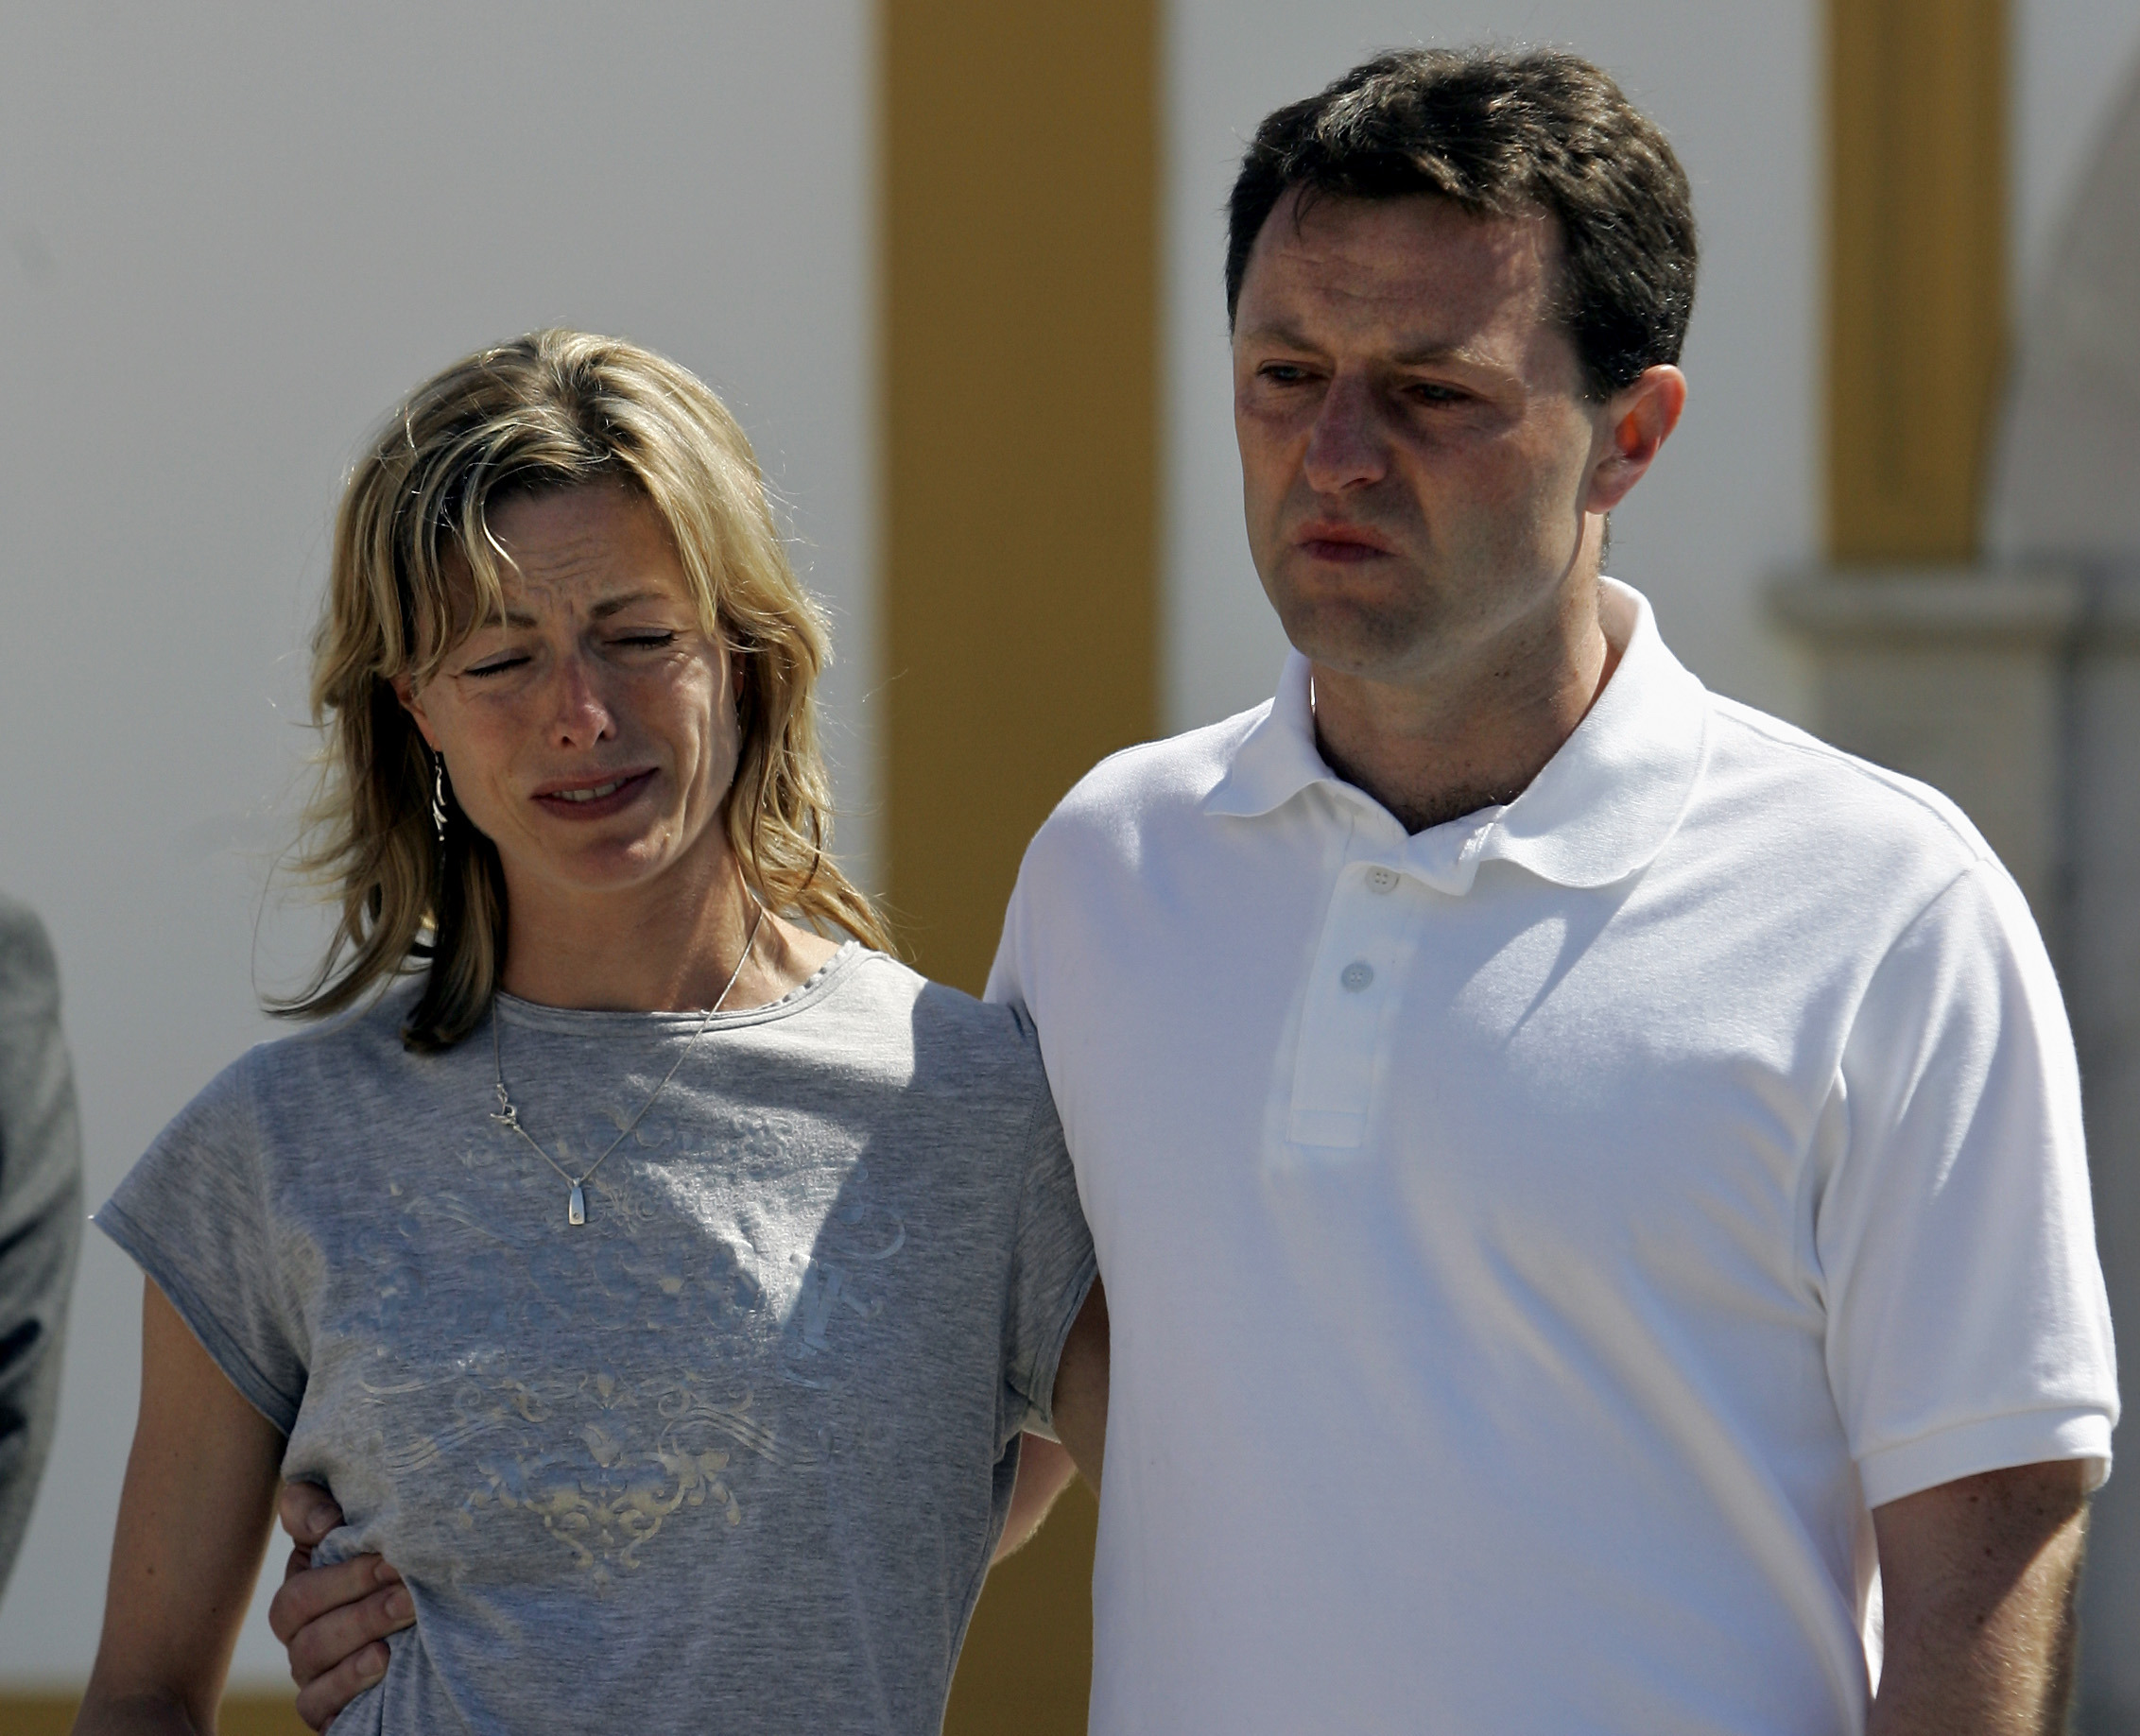 Reason Maddie McCanns Parents Werent Charged Over Disappearance Finally Revealed PA 4628917